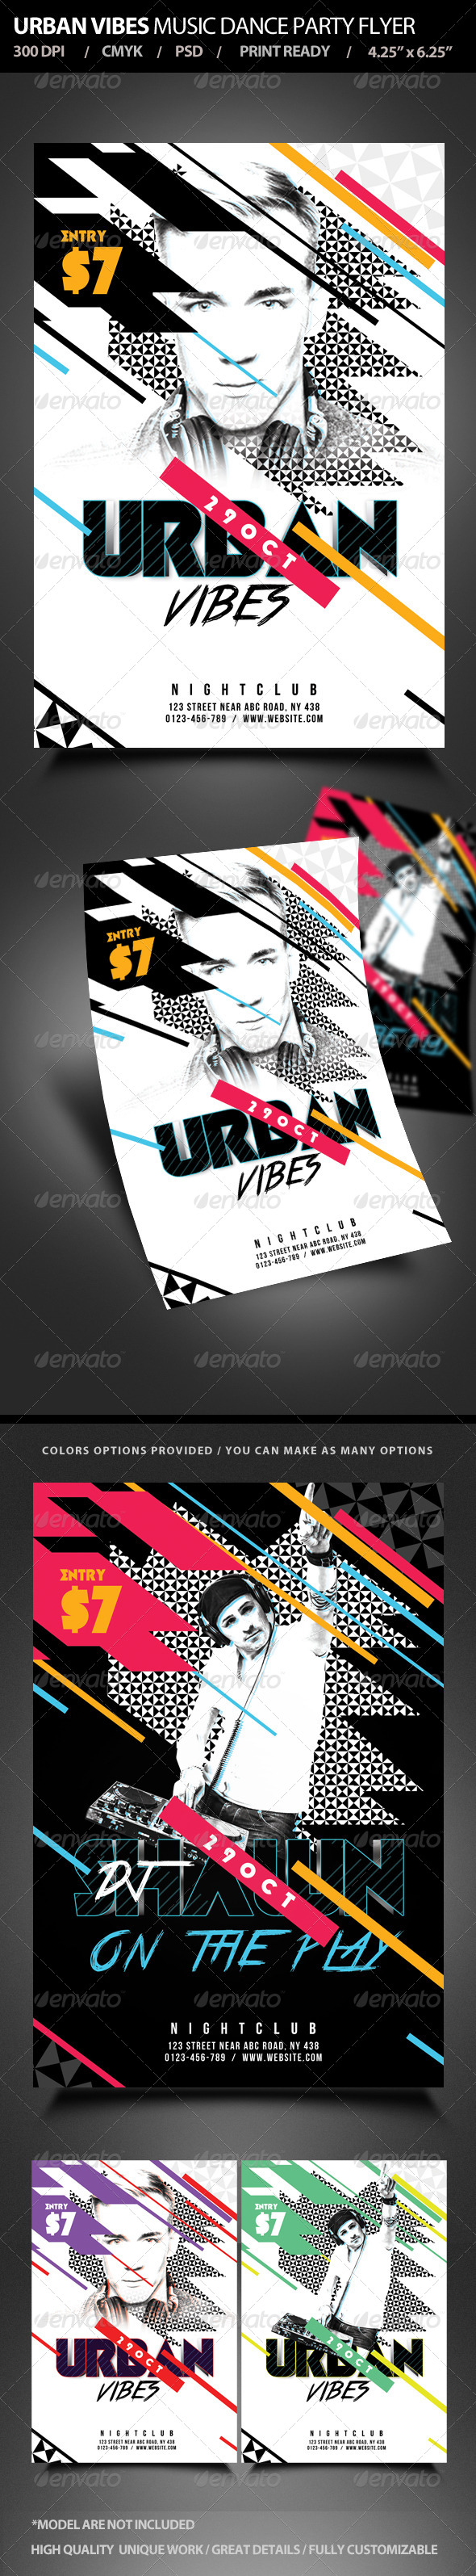 GraphicRiver Urban Vibes Music Dance Party Flyer 5648067